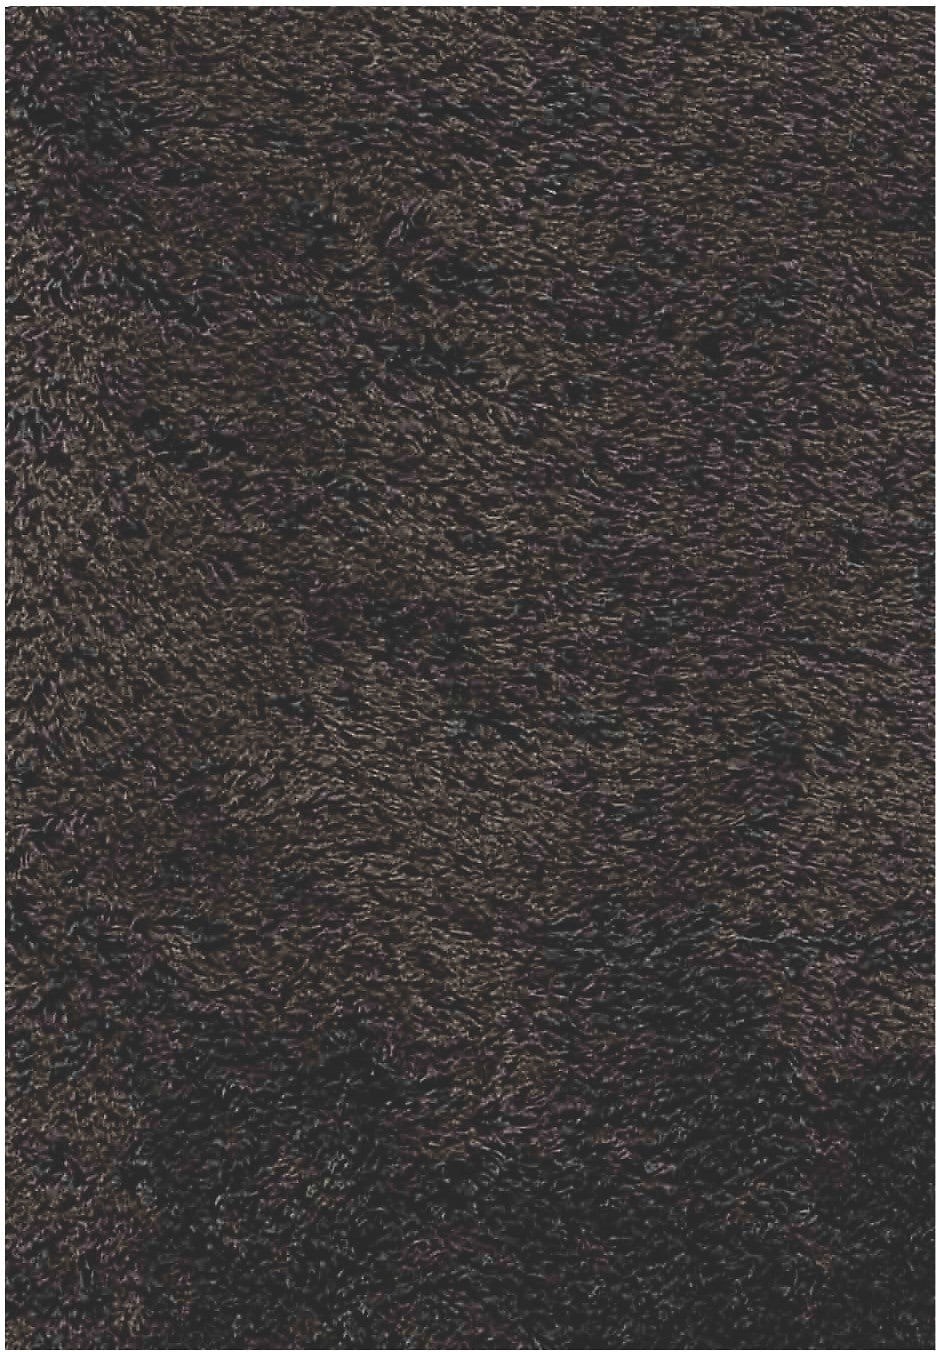 Rugs - Shaggy Charcoal Area Rug – 5'x 8'